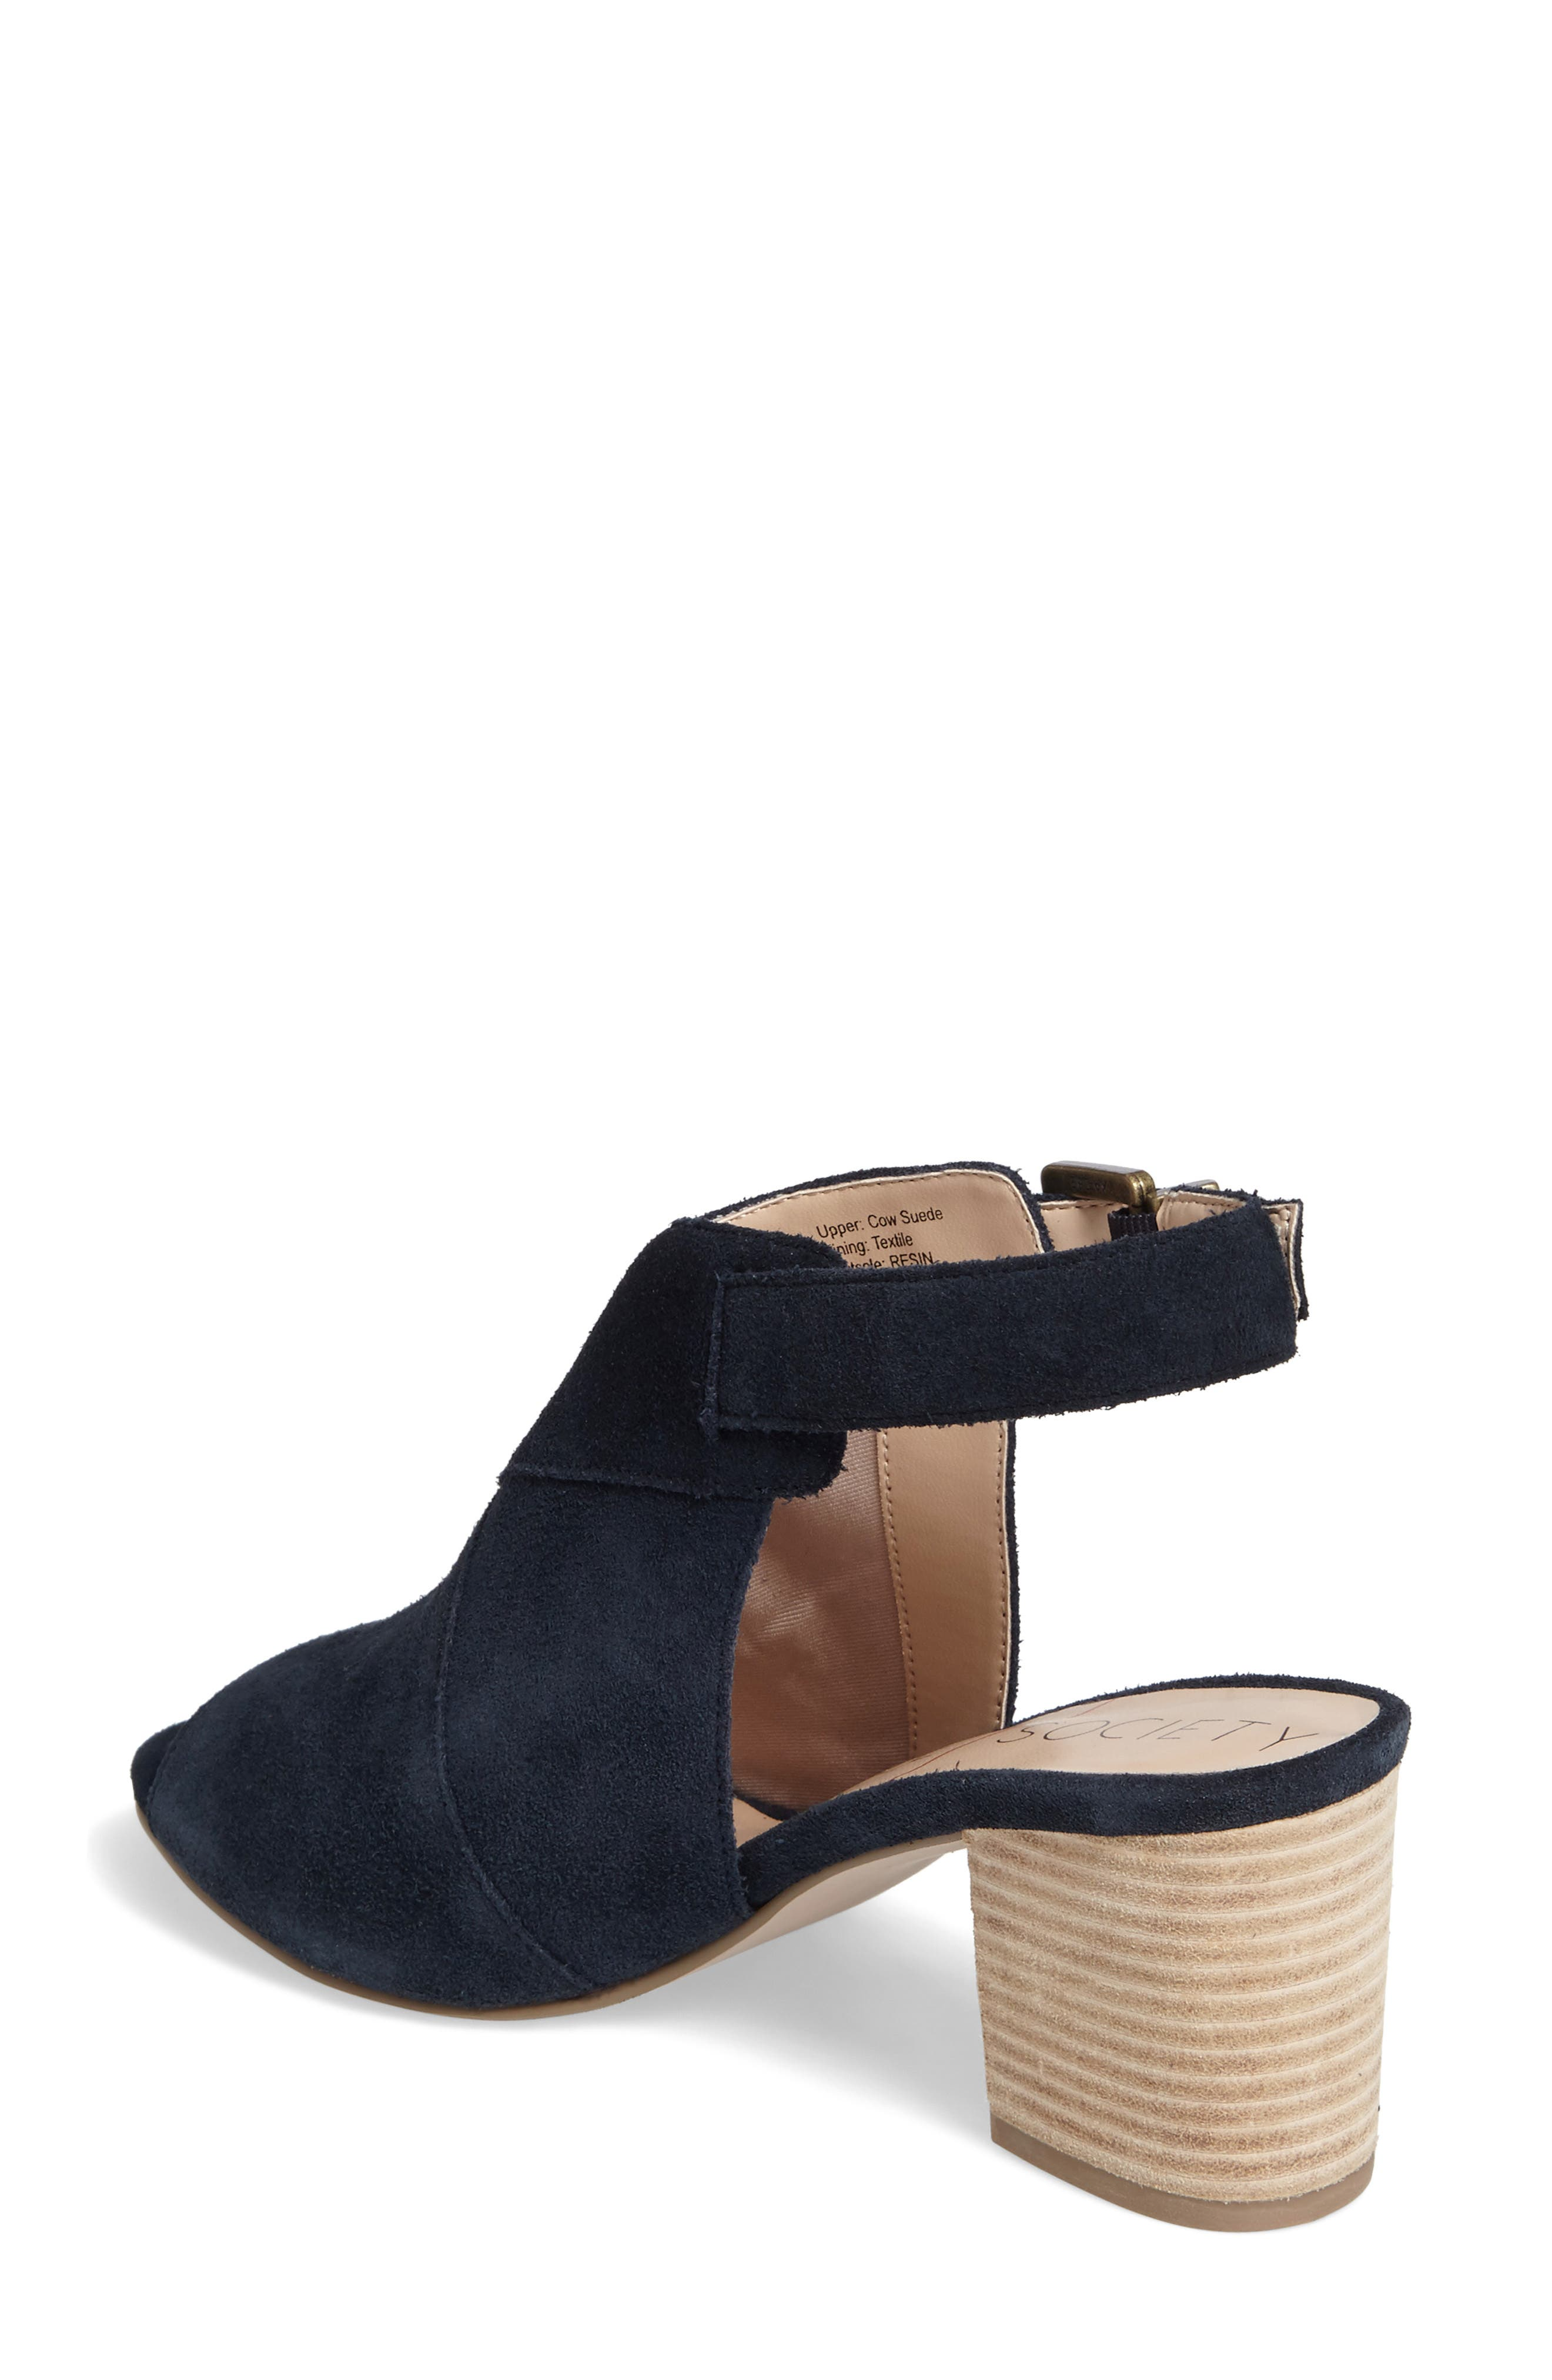 Zuma Peep Toe Bootie,                             Alternate thumbnail 2, color,                             Ink Navy Suede